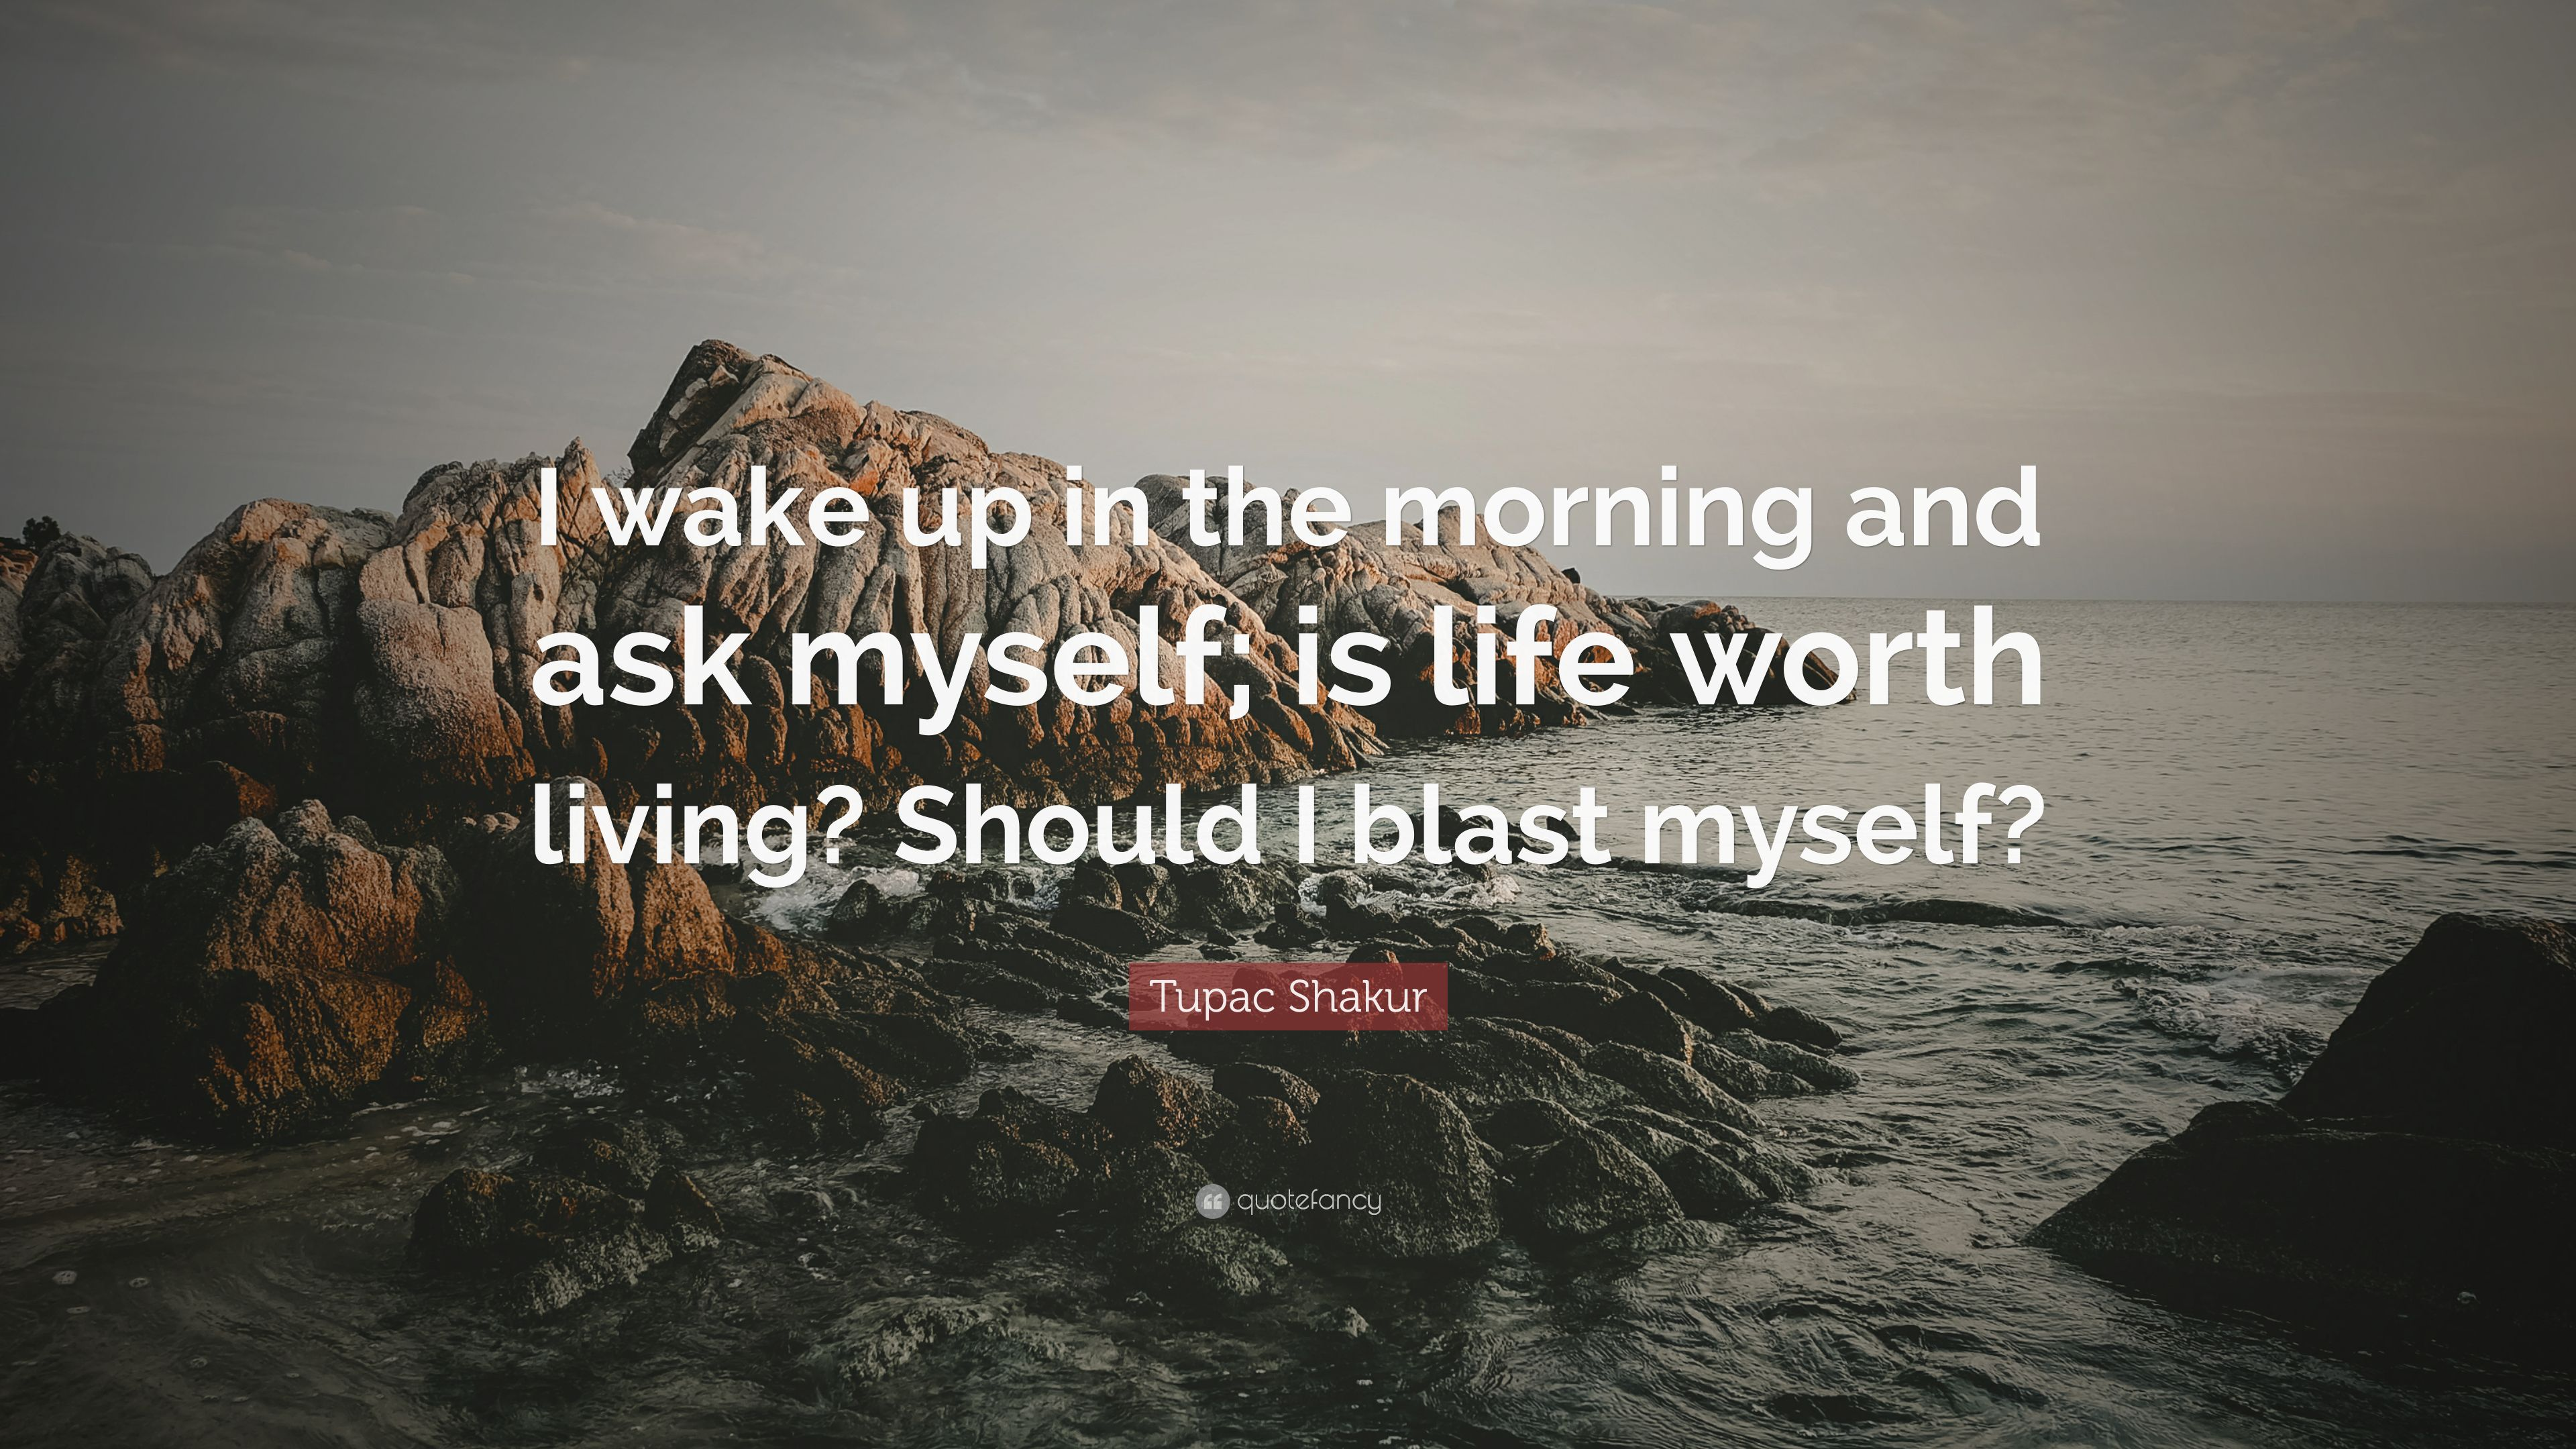 Tupac Shakur Quote I Wake Up In The Morning And Ask Myself Is